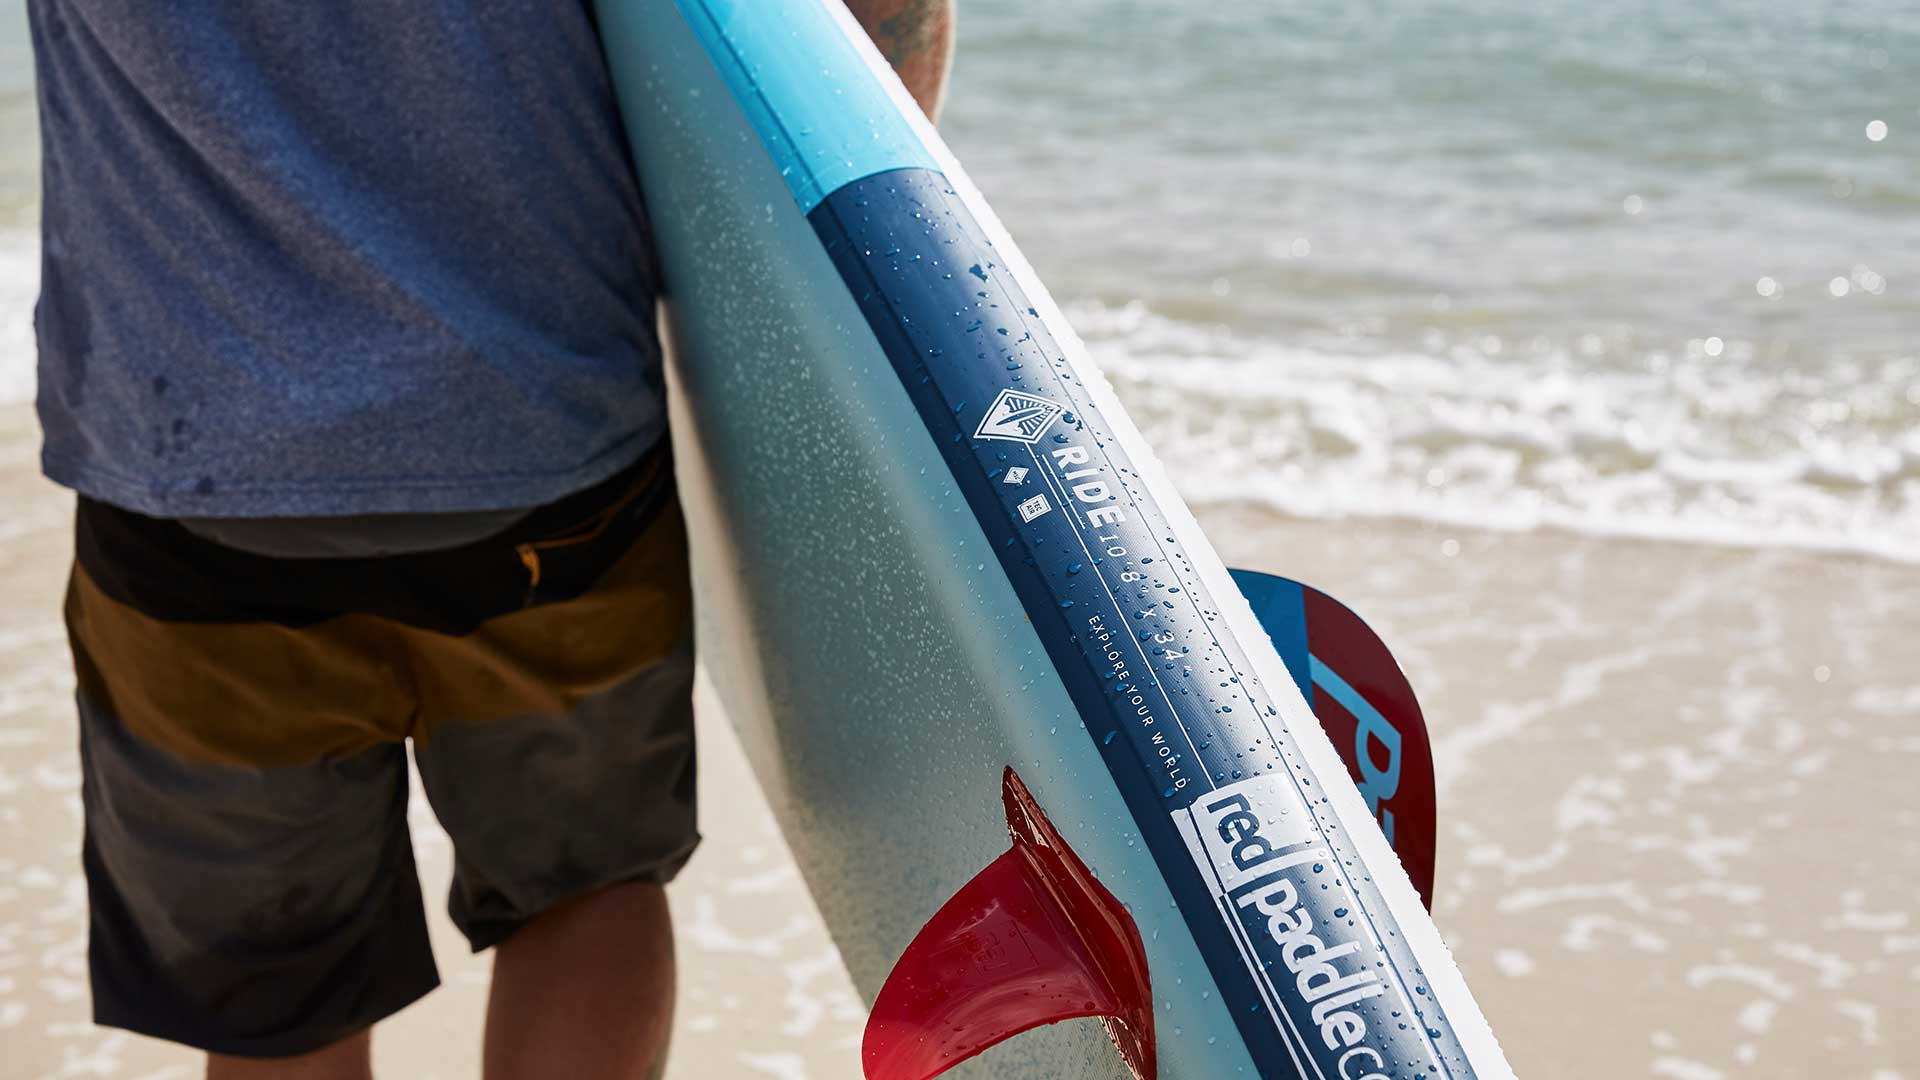 redpaddleco-108-ride-msl-inflatable-paddle-board-desktop-gallery-fins